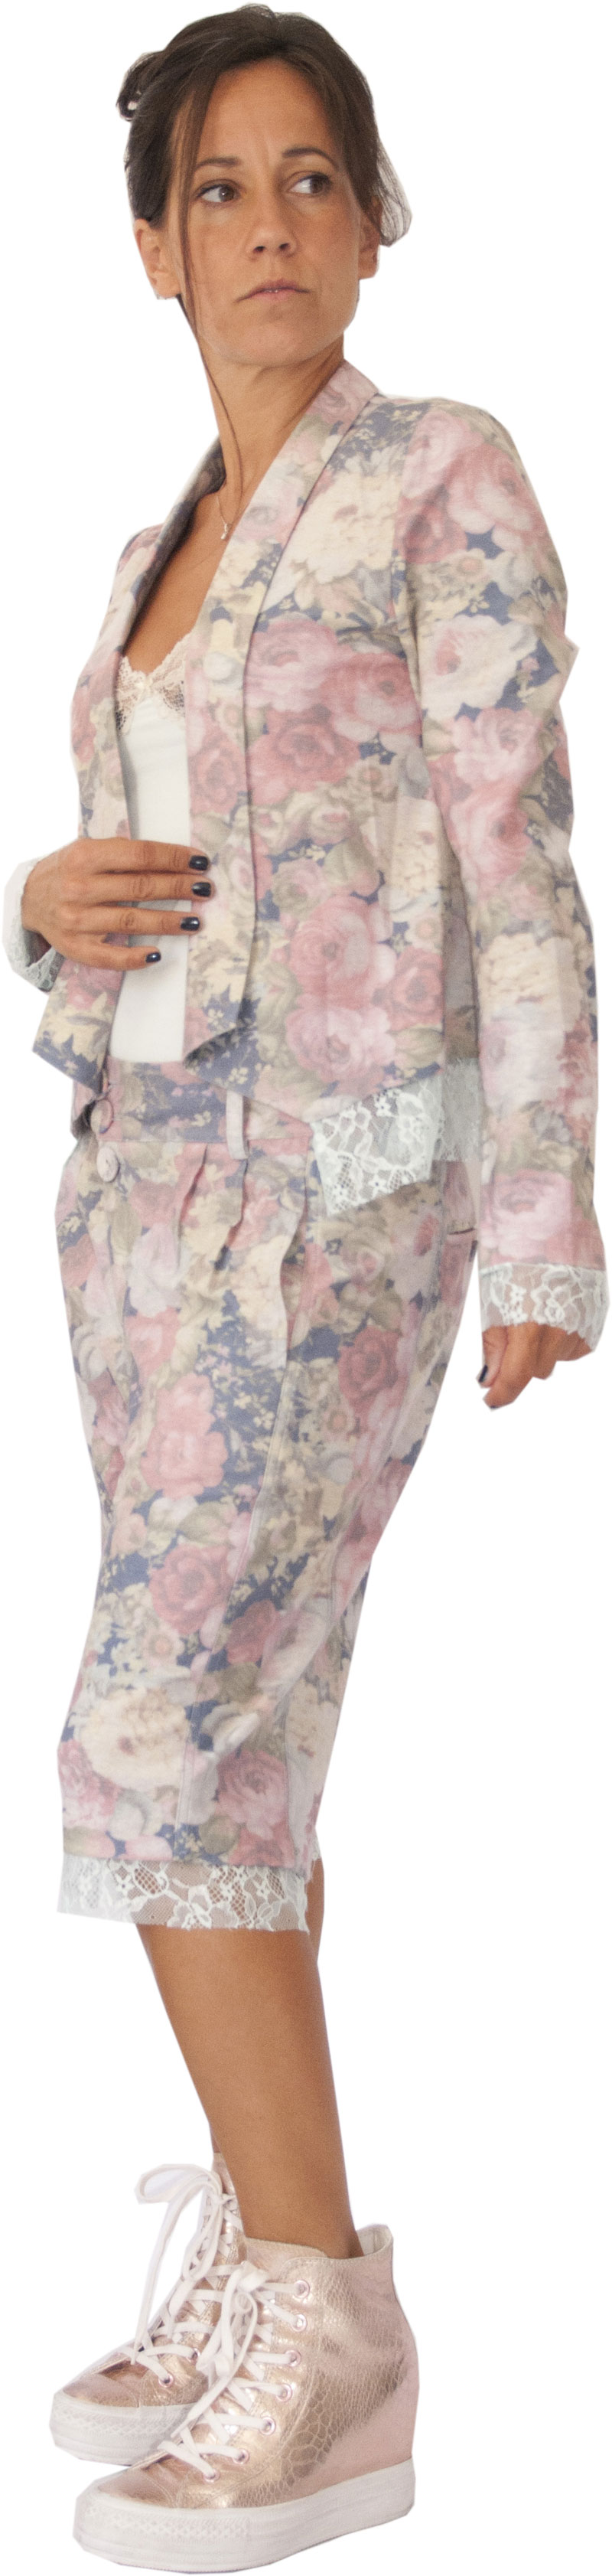 Veste Opéra Myrtille Collection Sweety